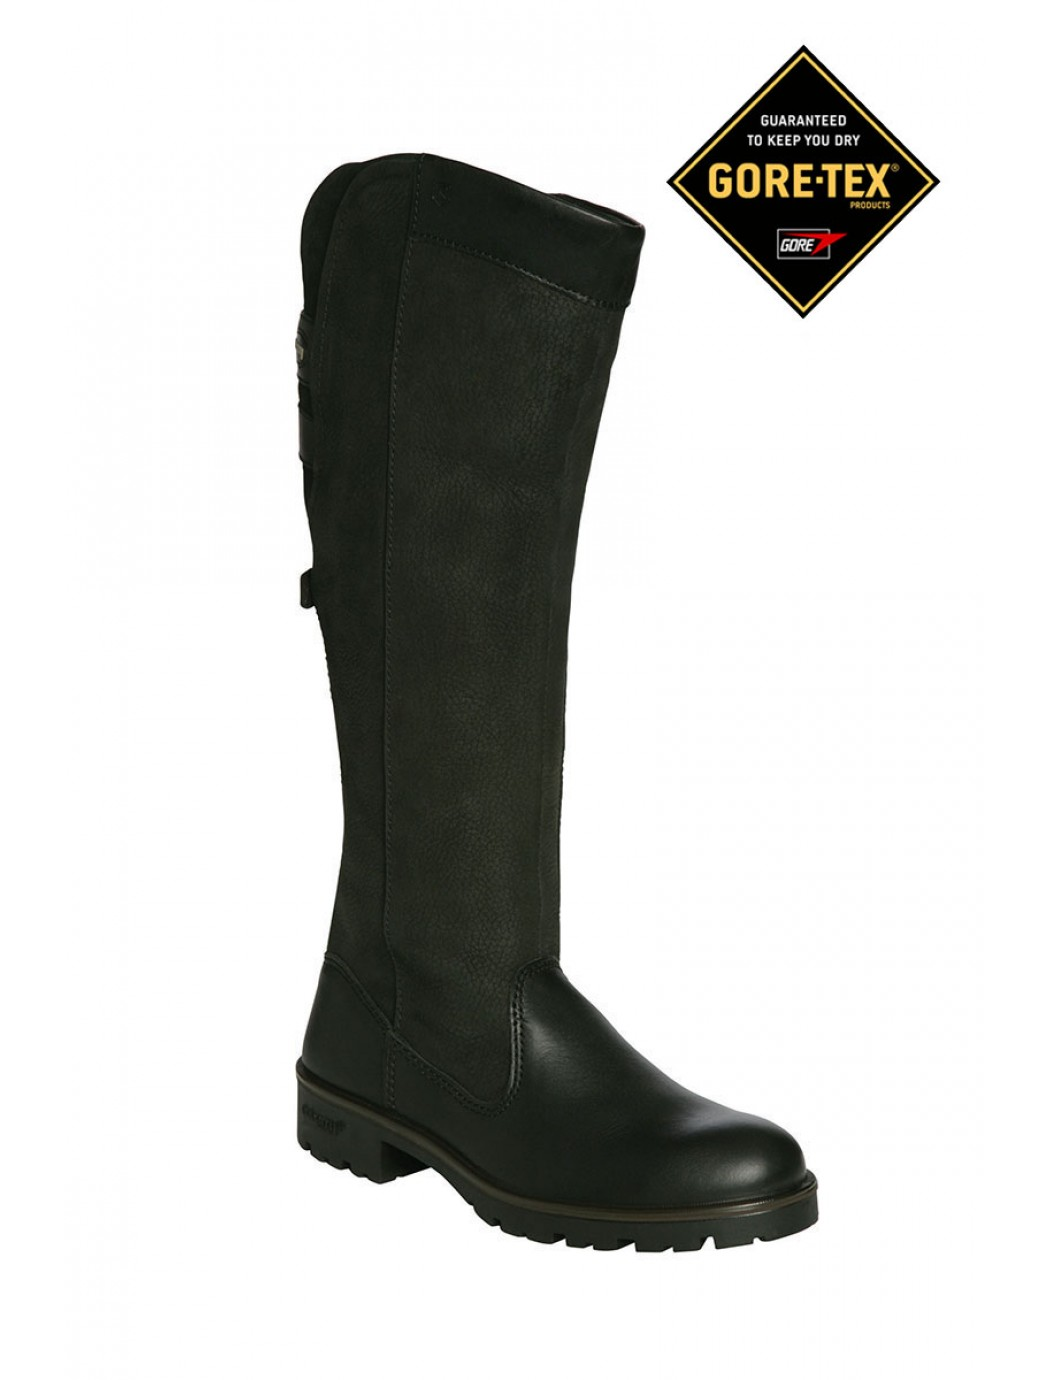 clare-country-boots-black 2 copy